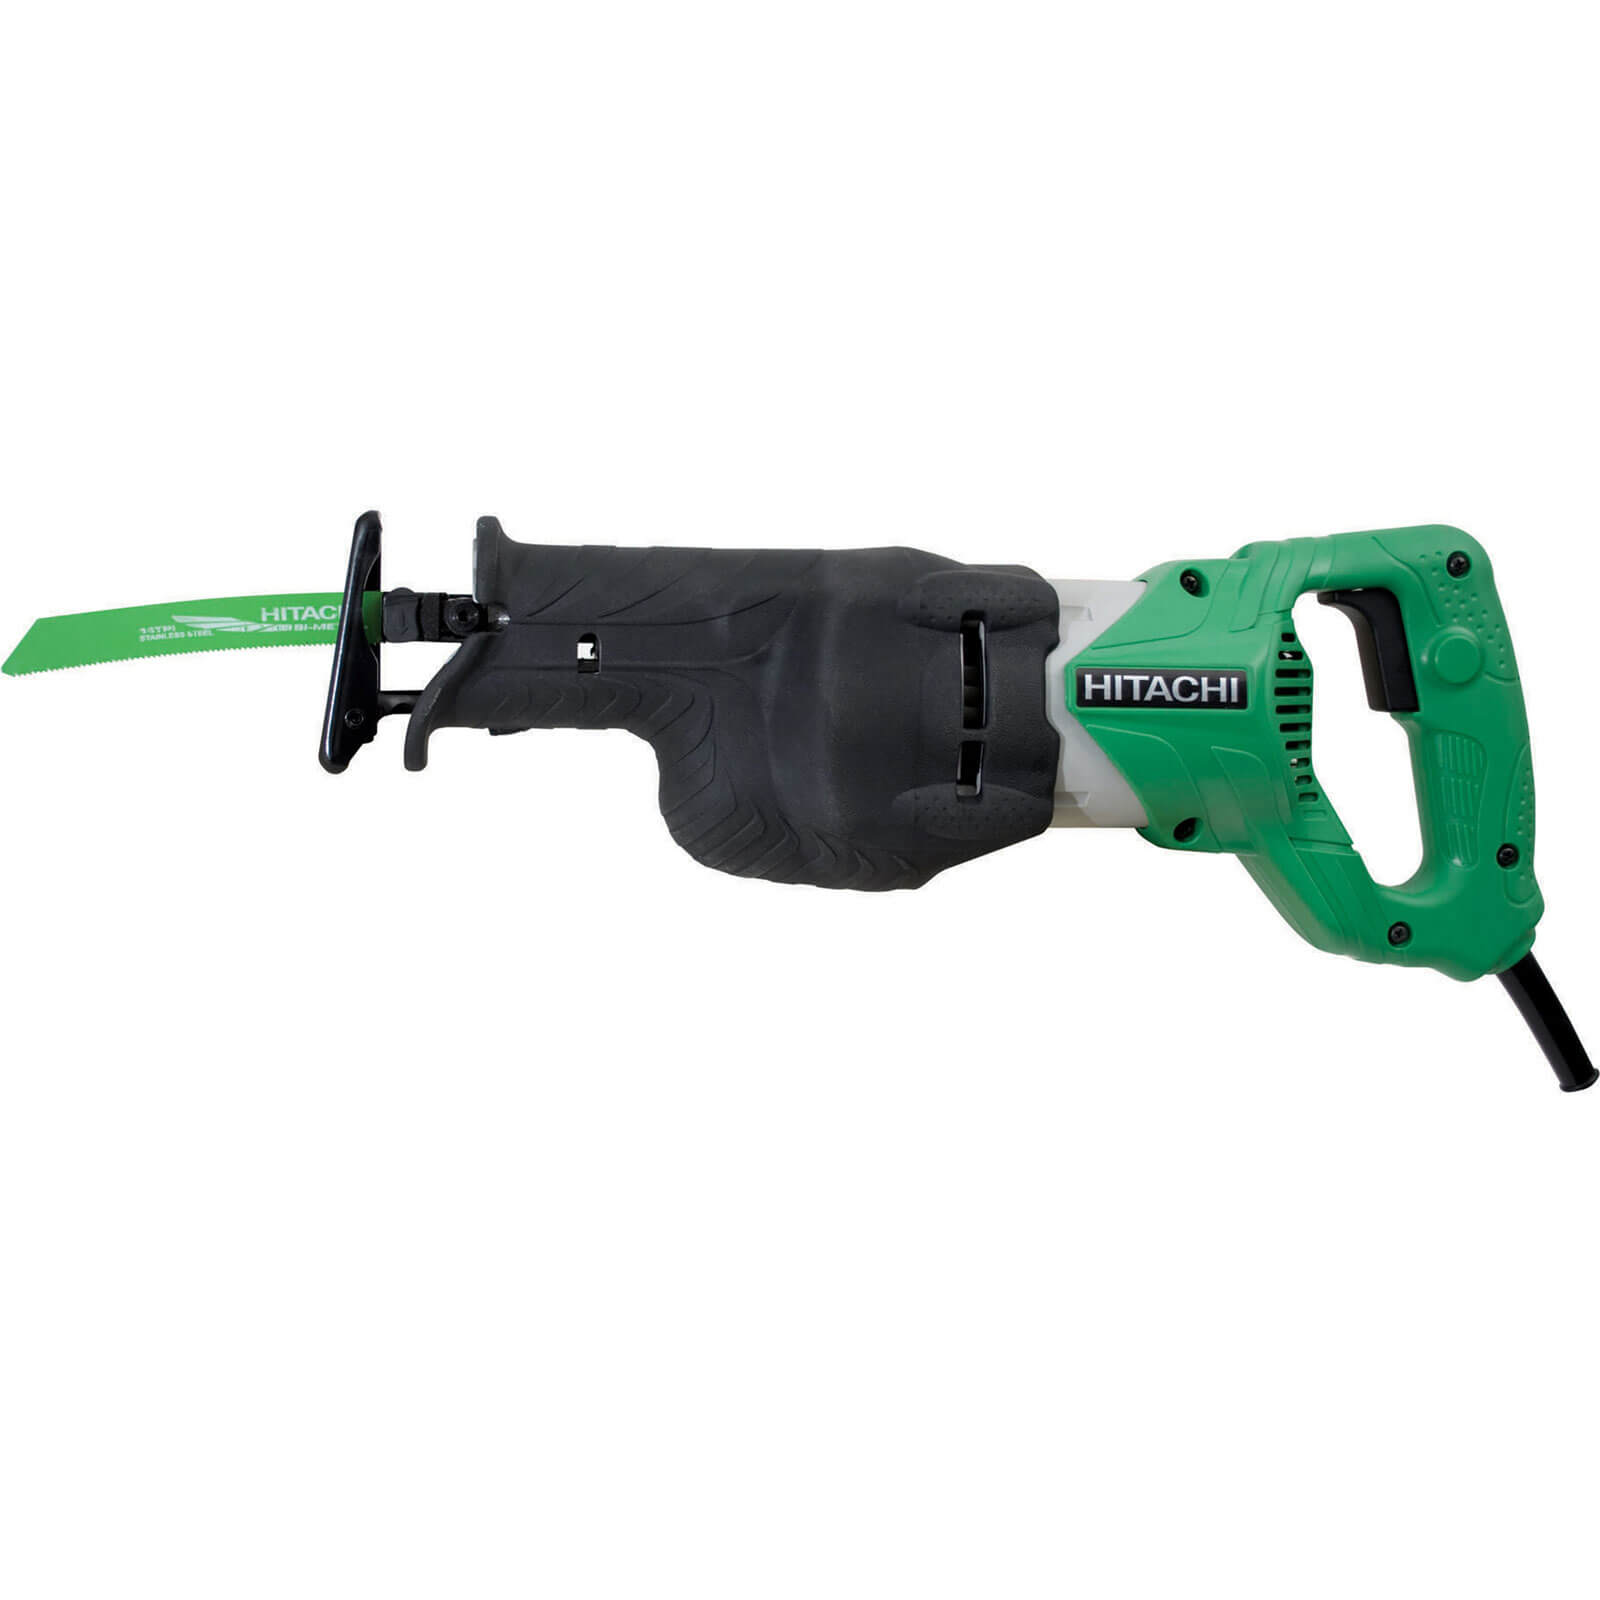 Image of Hitachi CR13 VC2 Reciprocating Saw 110v